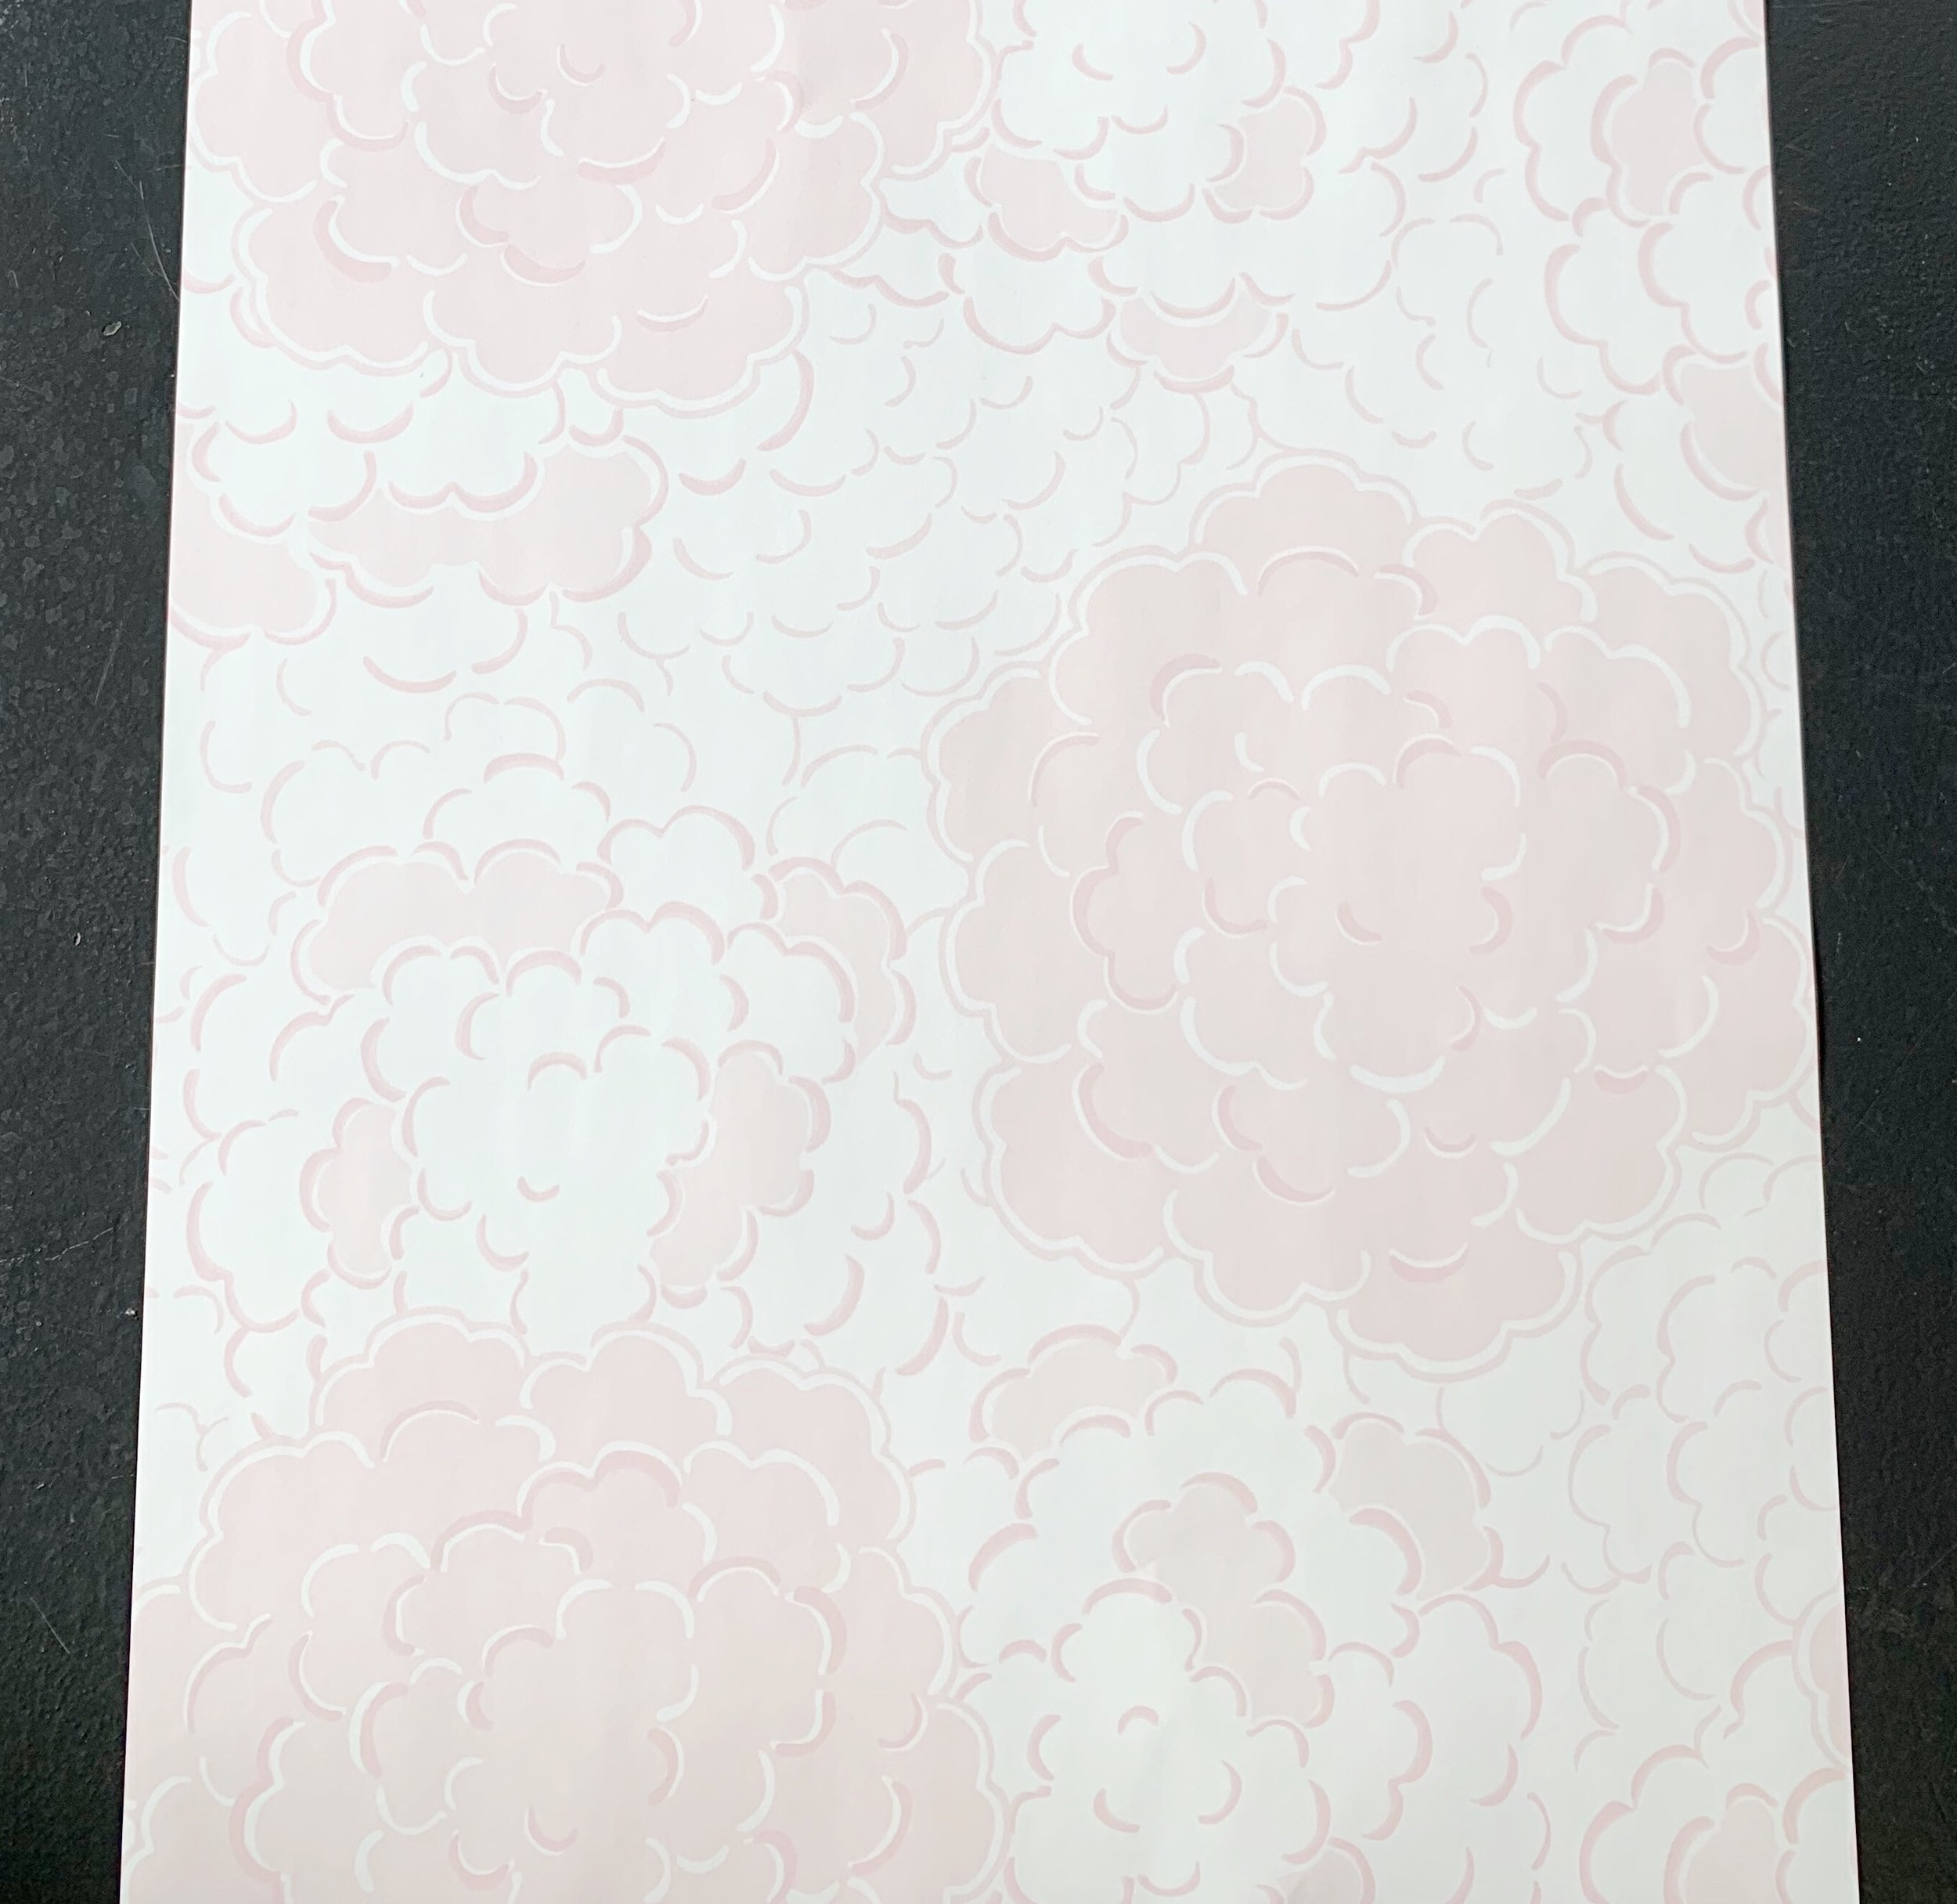 Sample wallpaper from The Pink Pagoda printed by Milton and King